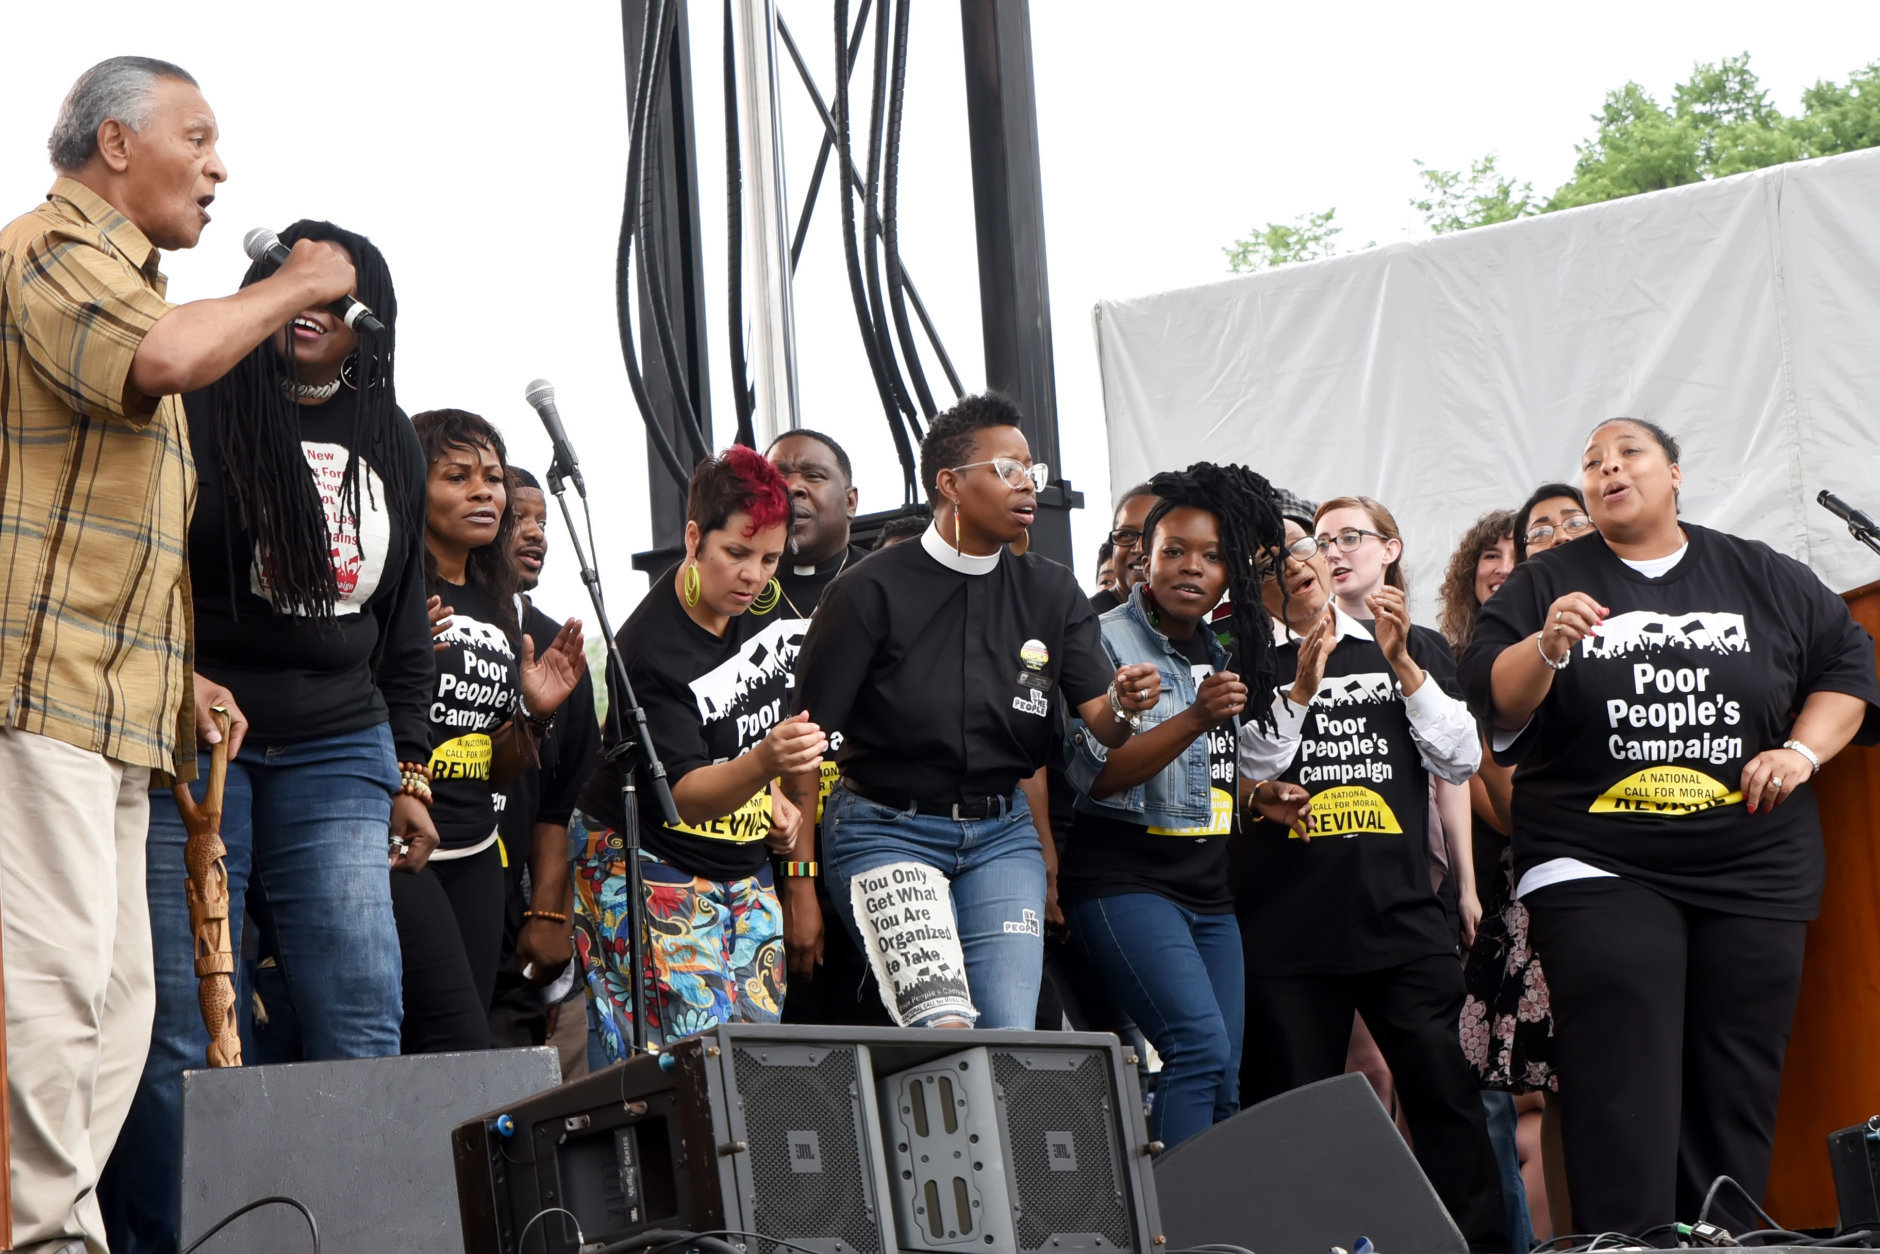 """Scenes from the Poor People's Rally and March. (Courtesy Shannon Finney/<a href=""""https://www.shannonfinneyphotography.com/index"""" target=""""_blank"""" rel=""""noopener noreferrer"""">shannonfinneyphotography.com</a>)"""